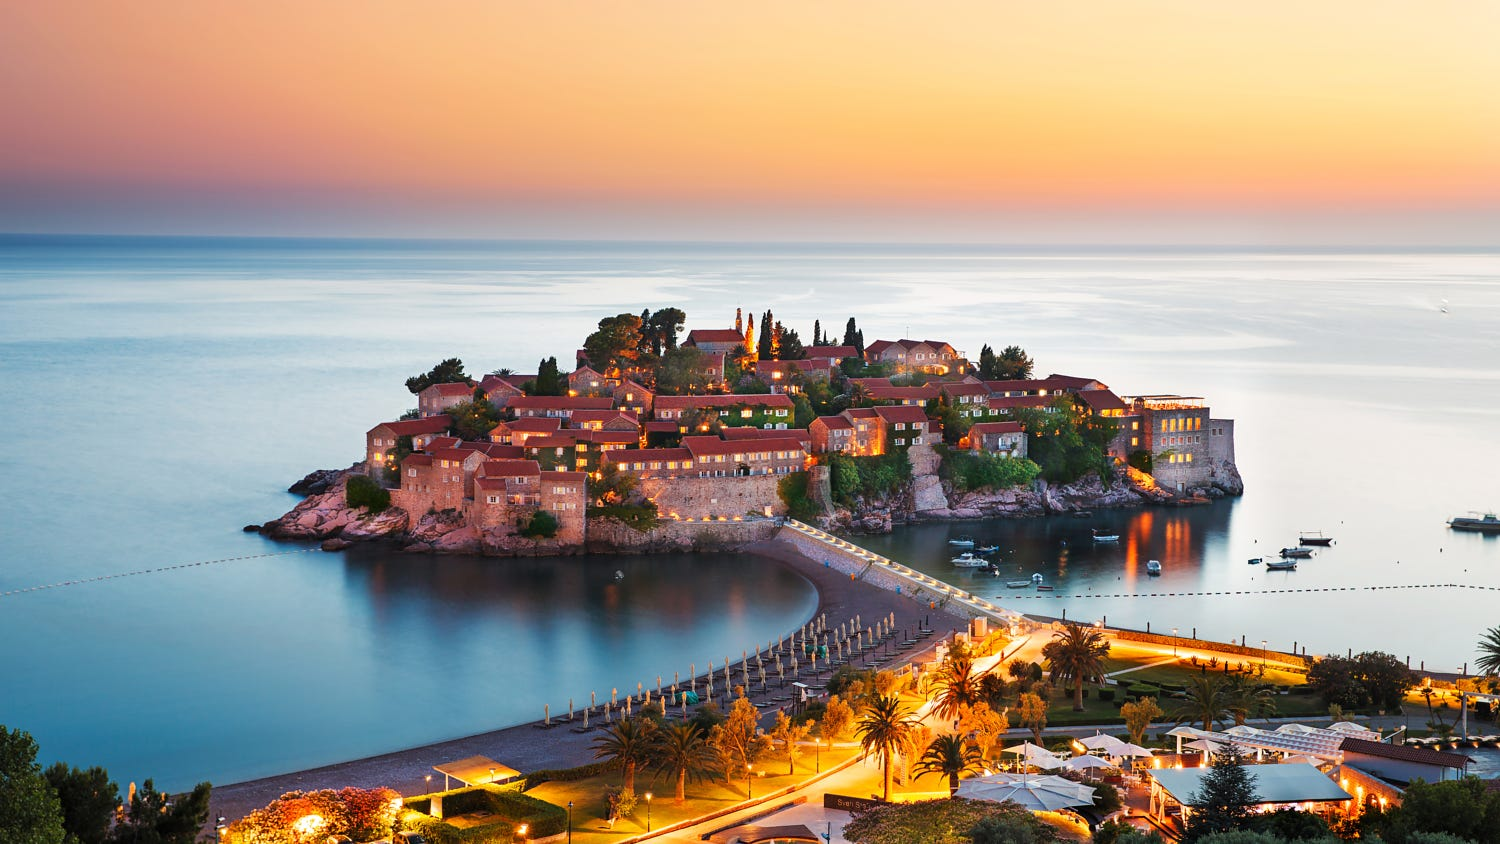 Aman Sveti Stefan for a luxury vacation